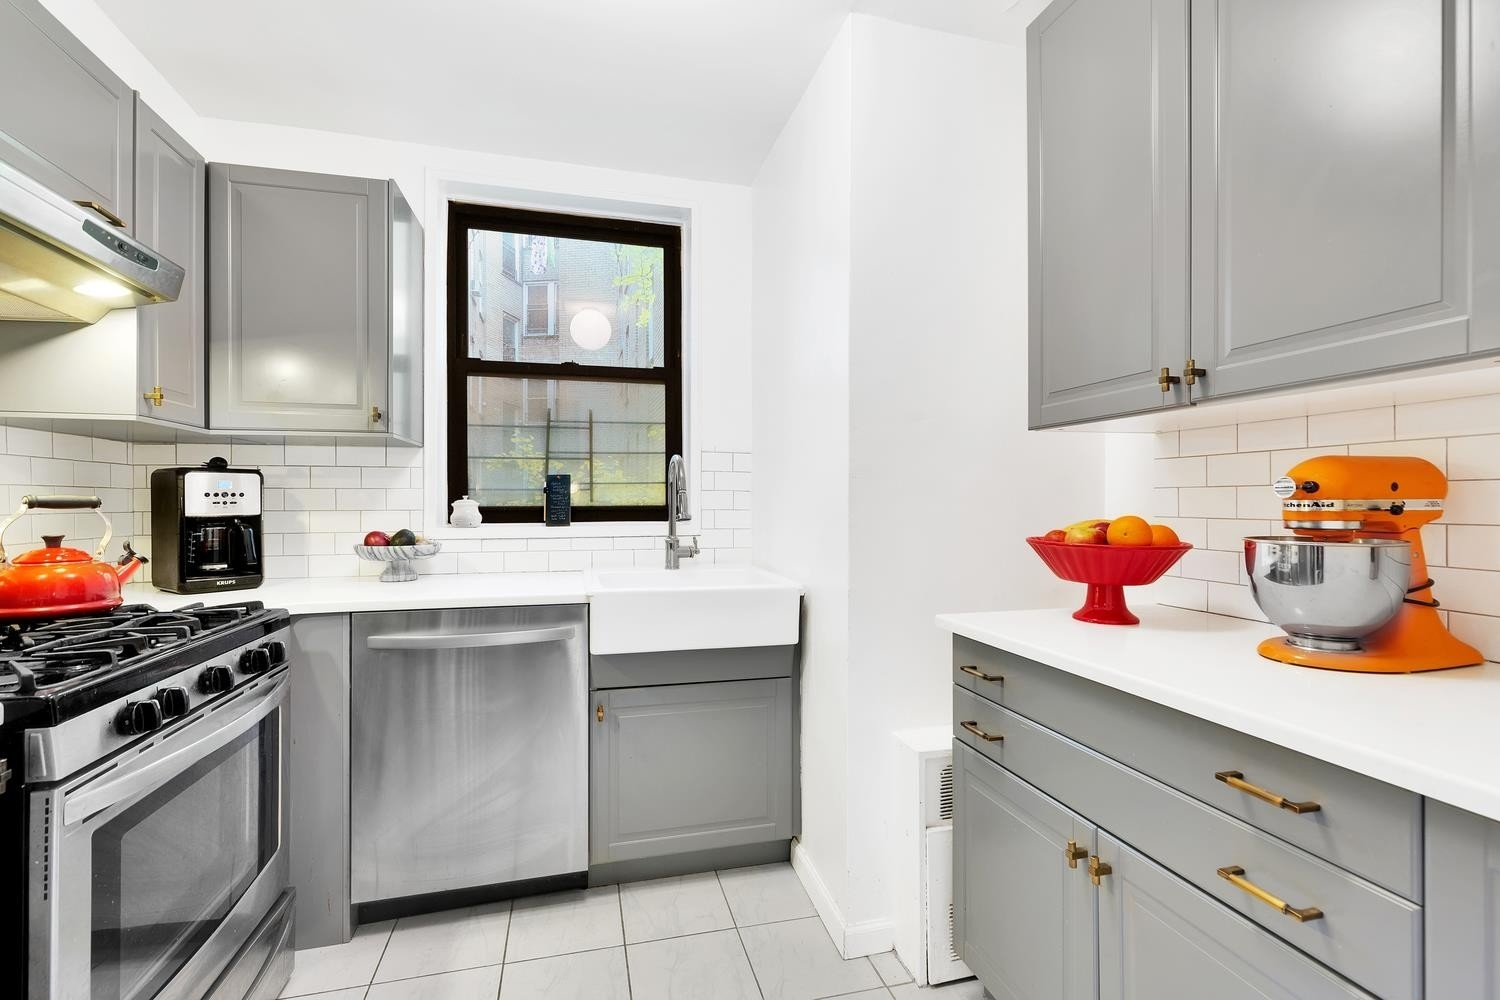 Co-op Properties en 275 Webster Avenue, 3B Ditmas Park, Brooklyn